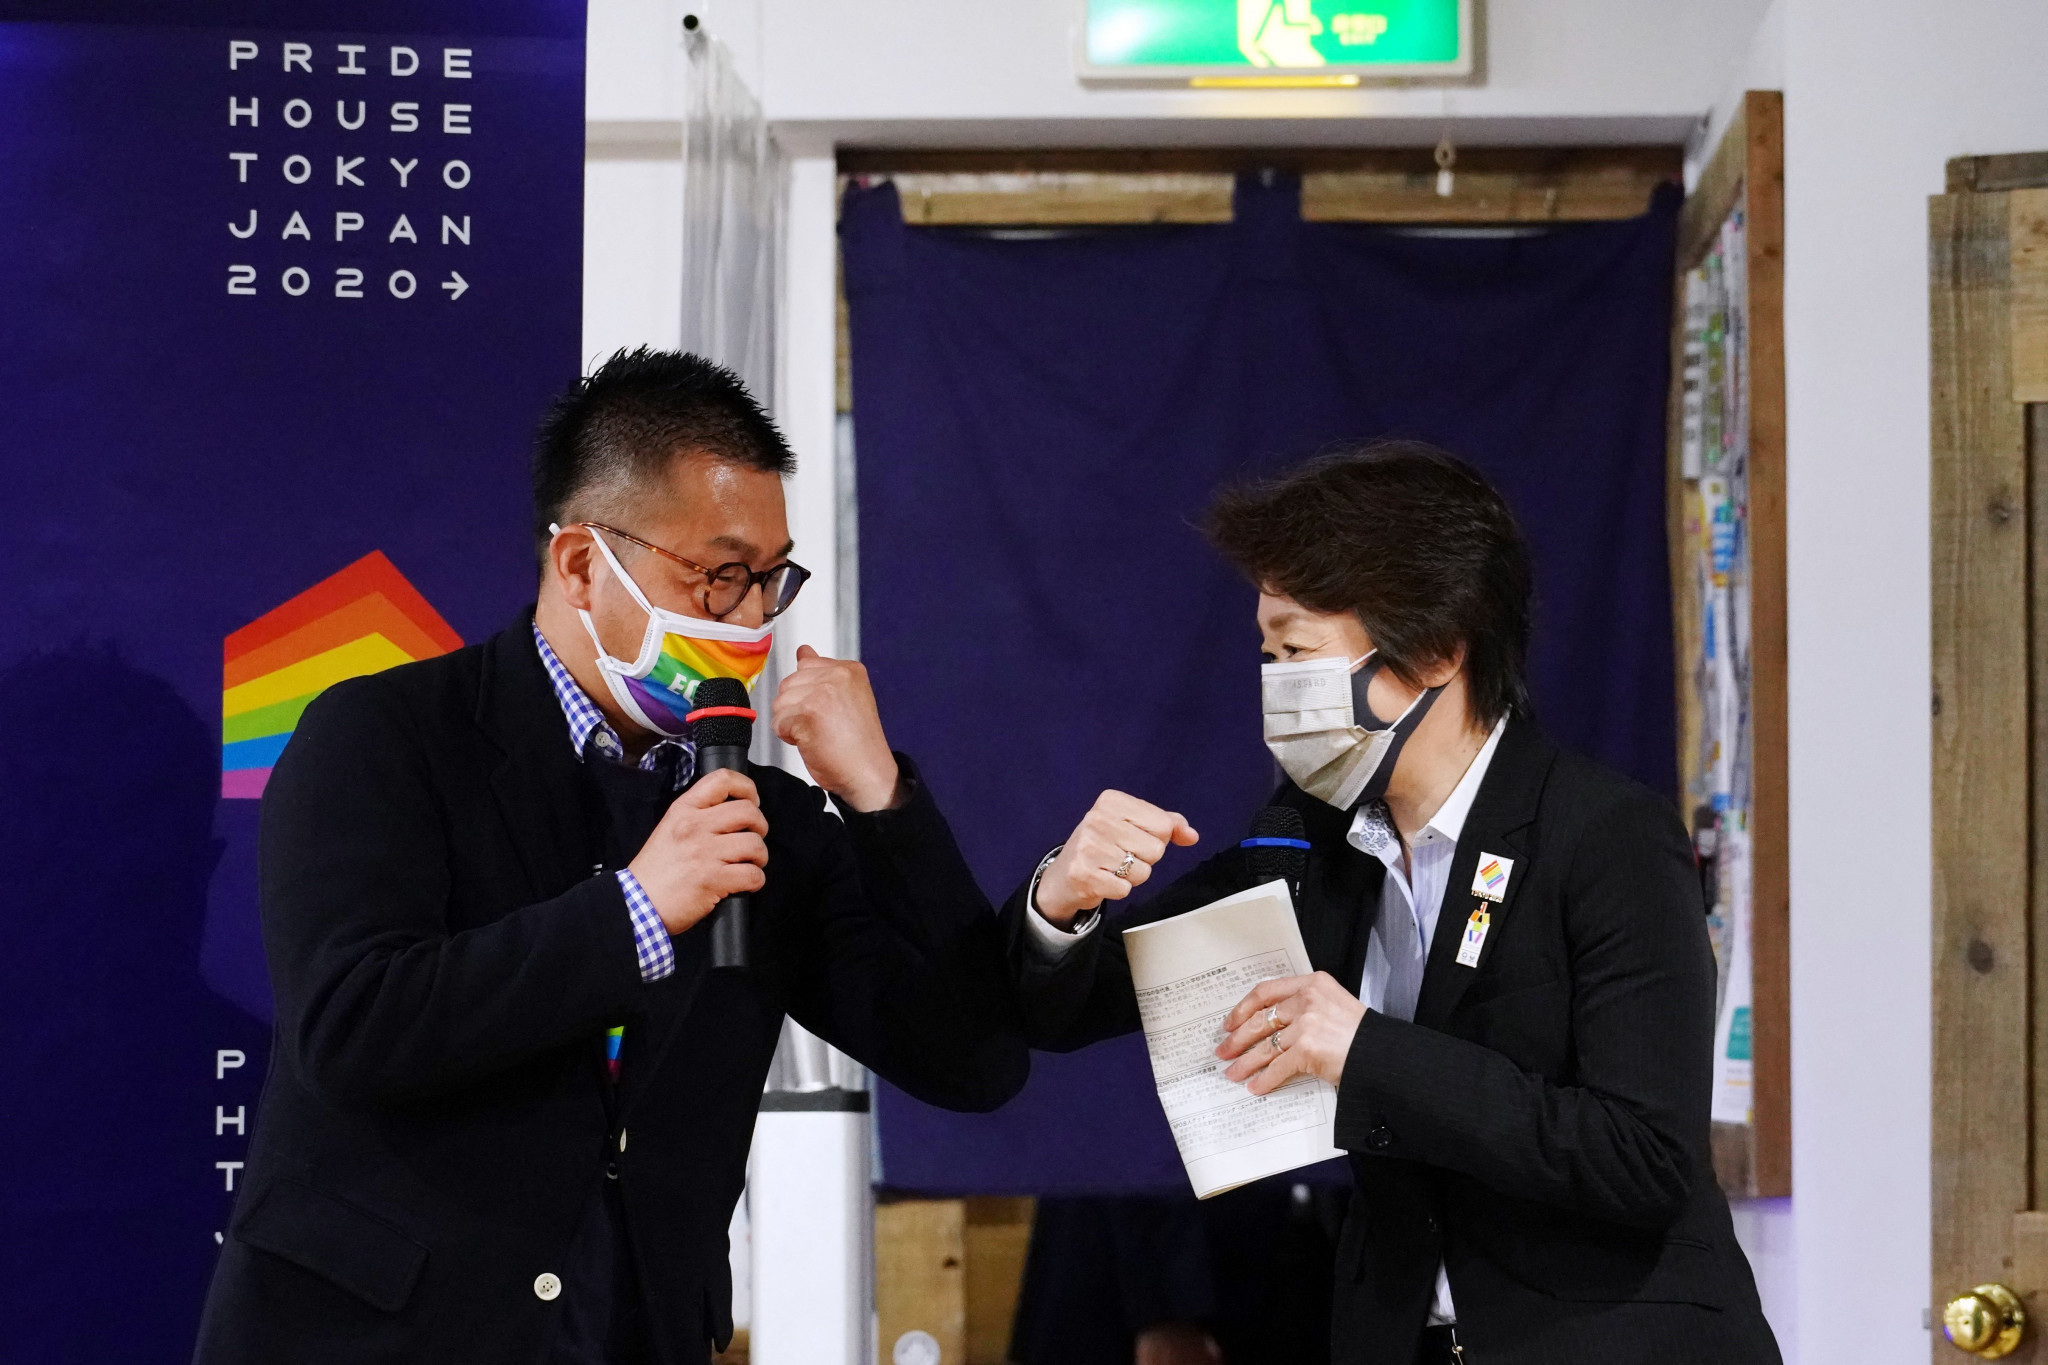 Gon Matsunaka, left, President of Pride House Tokyo hosted Seiko Hashimoto ©Getty Images